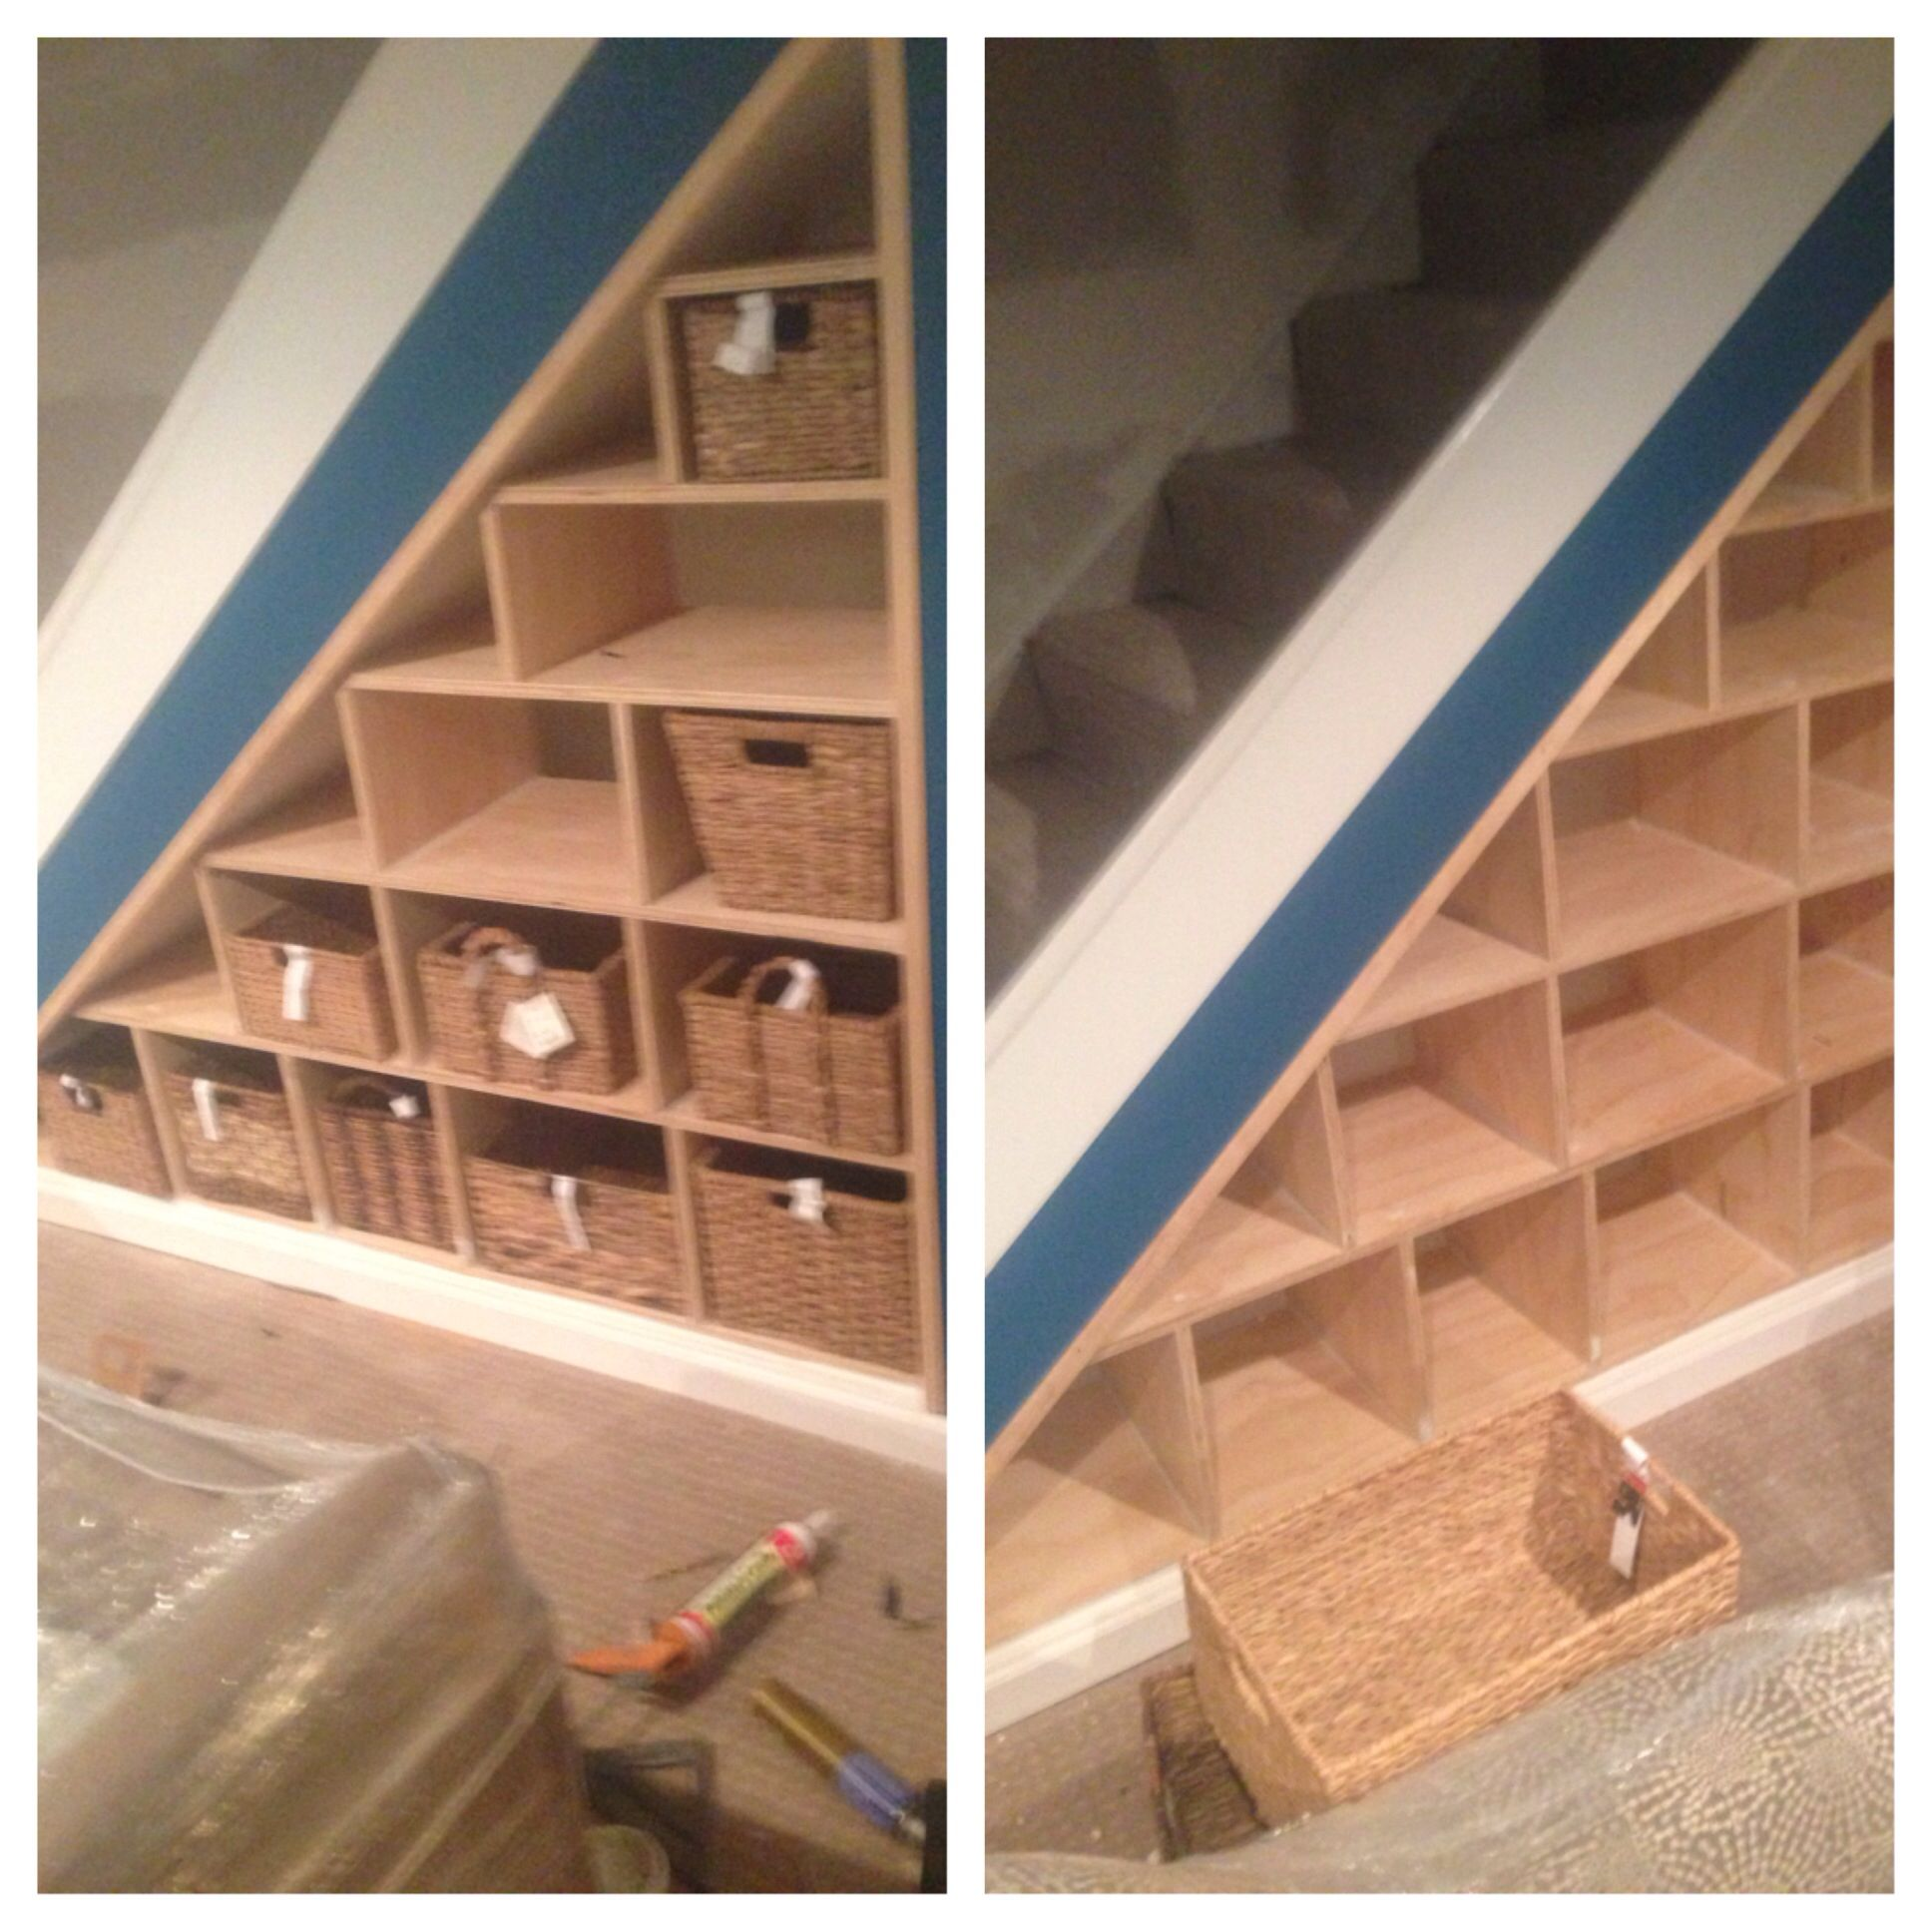 Basement Storage Under Steps. Add Varied Size Shelves For